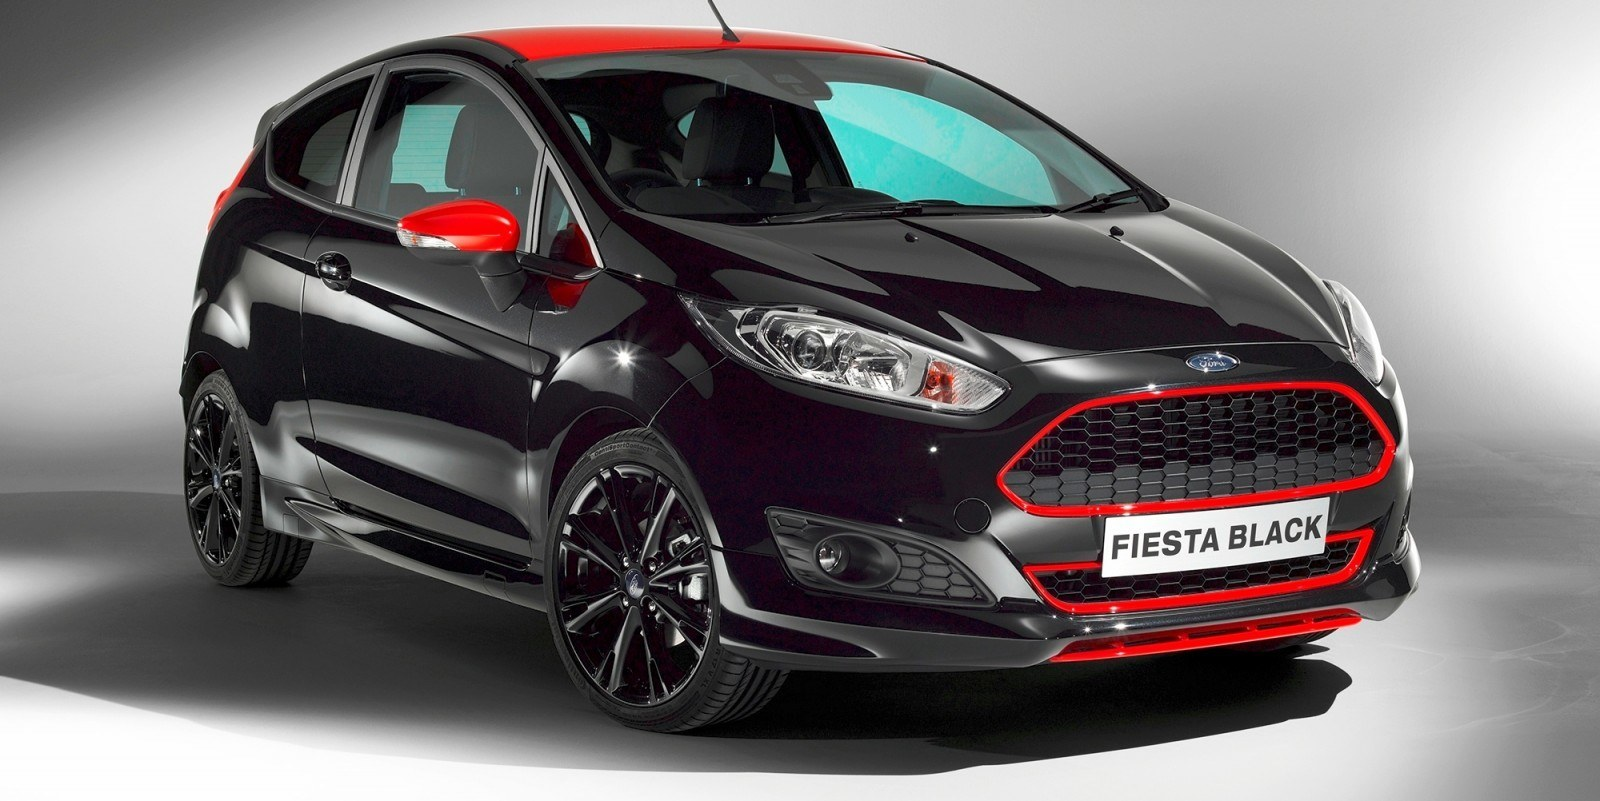 2014 Ford Fiesta Red Edition and Fiesta Black Edition Announced for UK 13